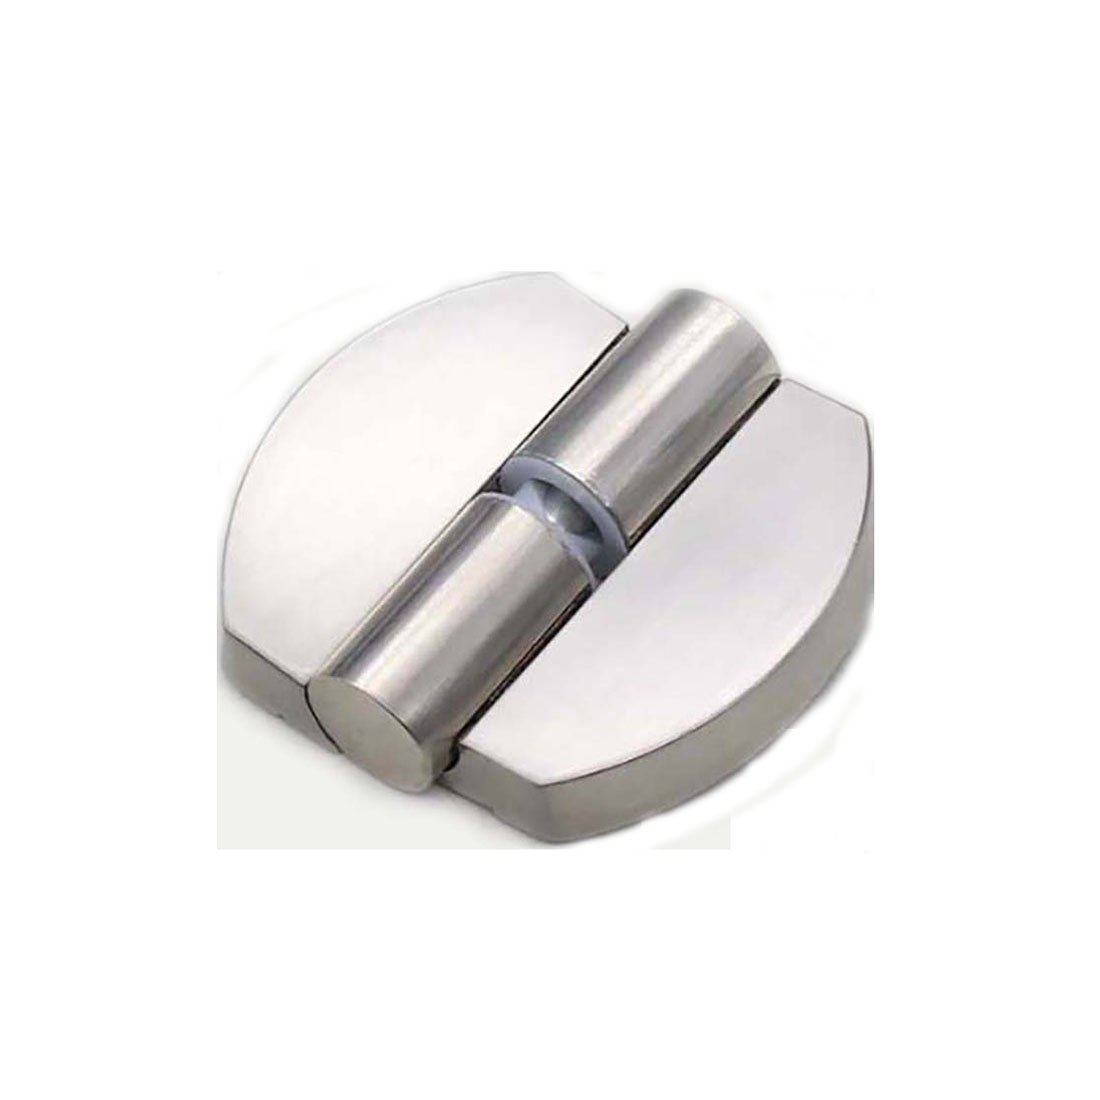 Flyshop Toilet Stainless Steel Lift Off Hinge Right Handedness Silver Oval Shape by Flyshop